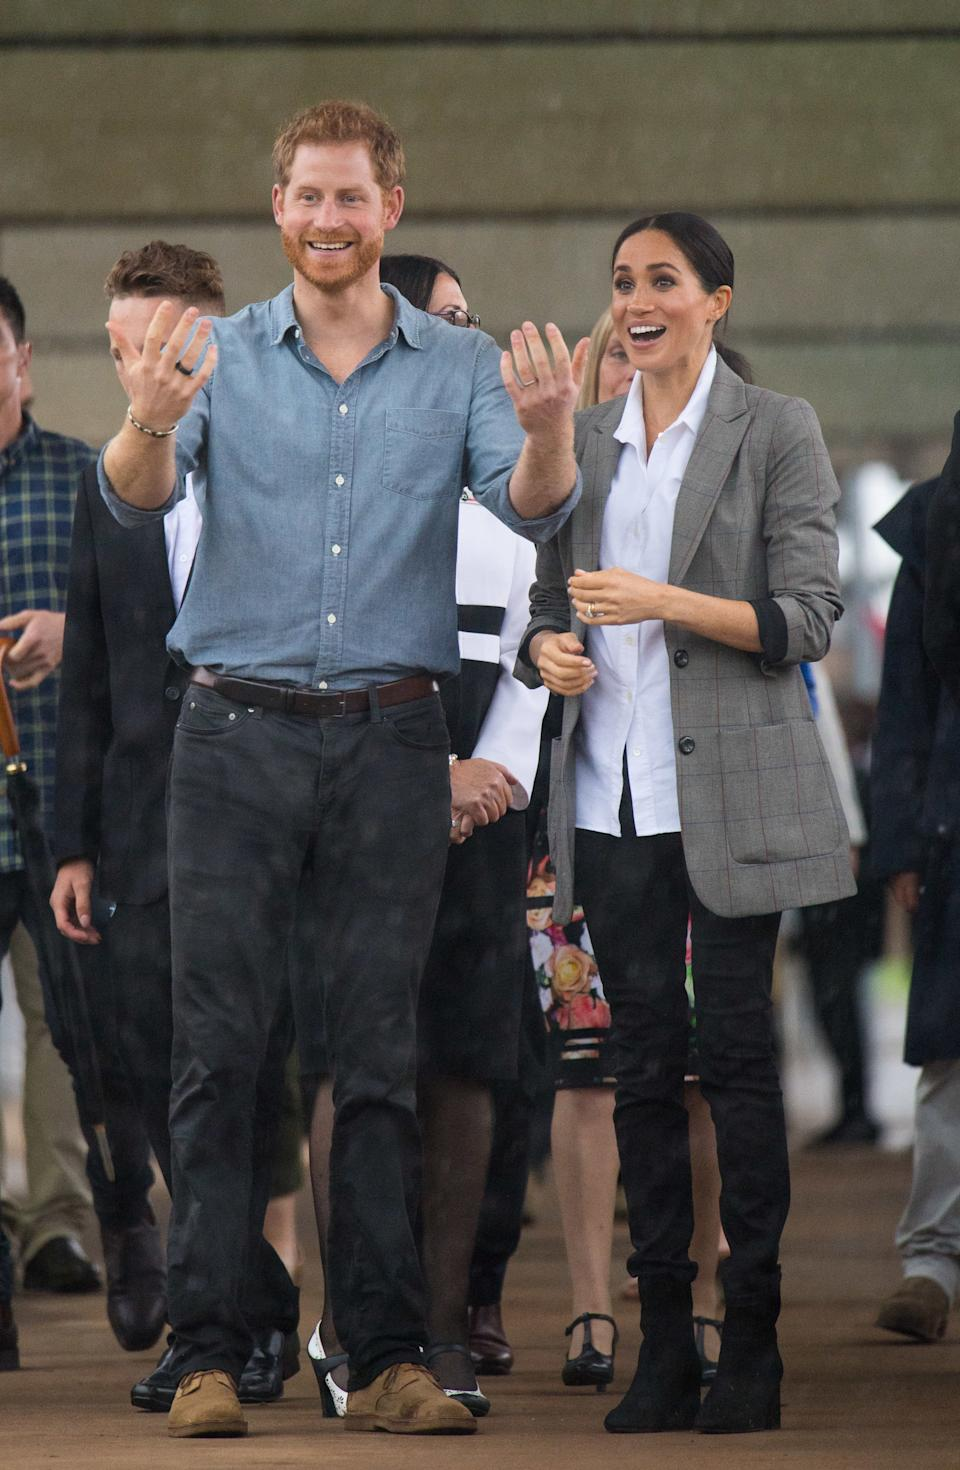 The Duke and Duchess of Sussex look out at a heavy downpour of rain during a visit to Clontarf Foundation and Girls Academy in Dubbo, New South Wales, on the second day of the royal couple's visit to Australia. (Photo by Dominic Lipinski/PA Images via Getty Images)